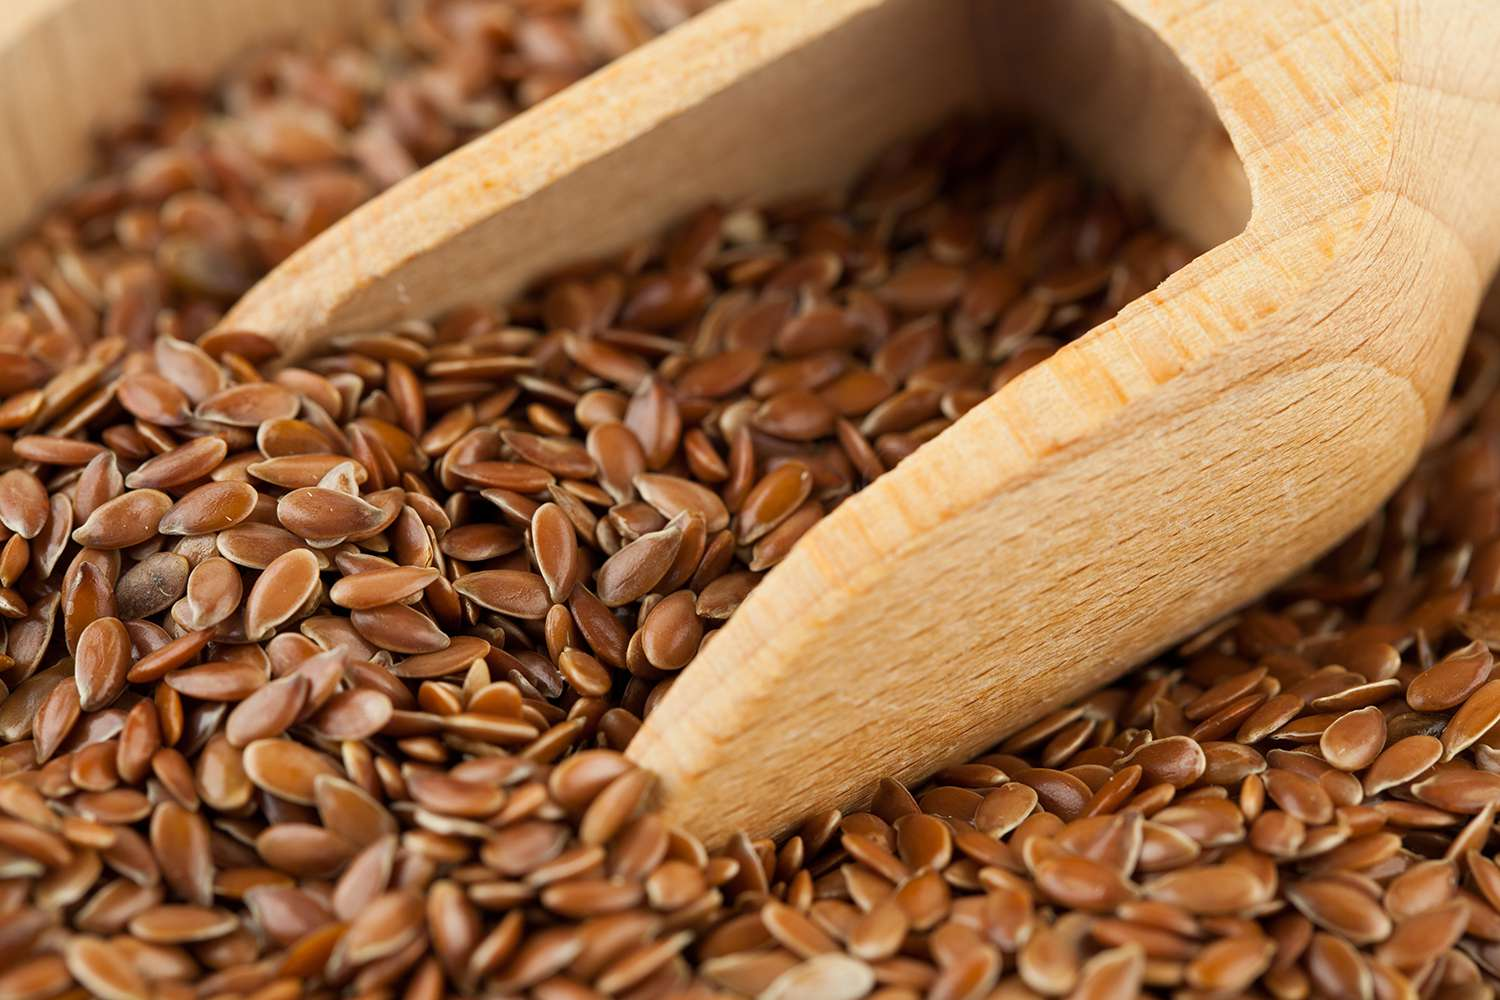 Flax seeds background in the foreground